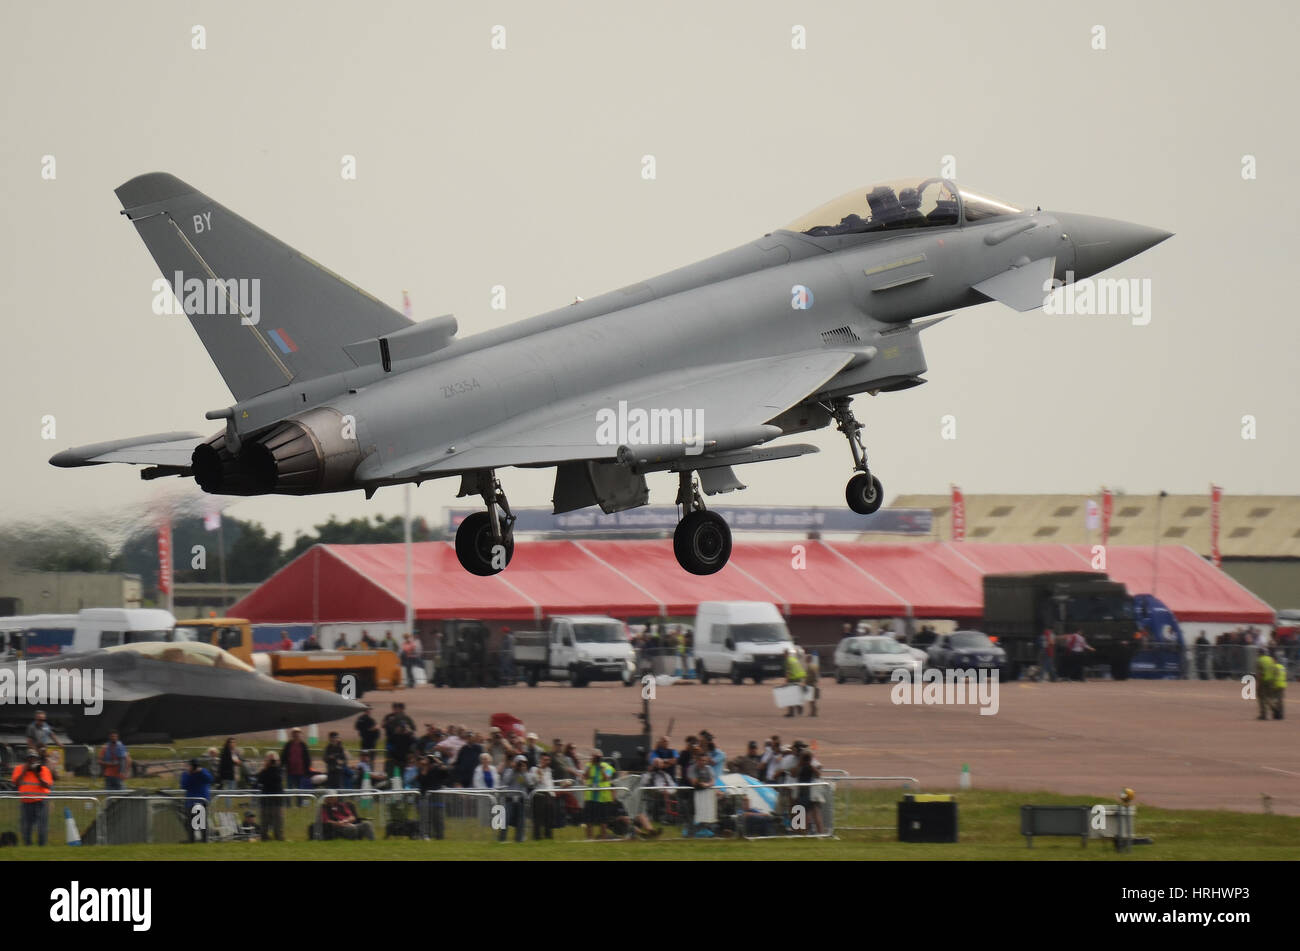 RAF Typhoon FGR4 fighter plane landing at the Royal International Air Tattoo, Fairford with crowd. Space for copy - Stock Image